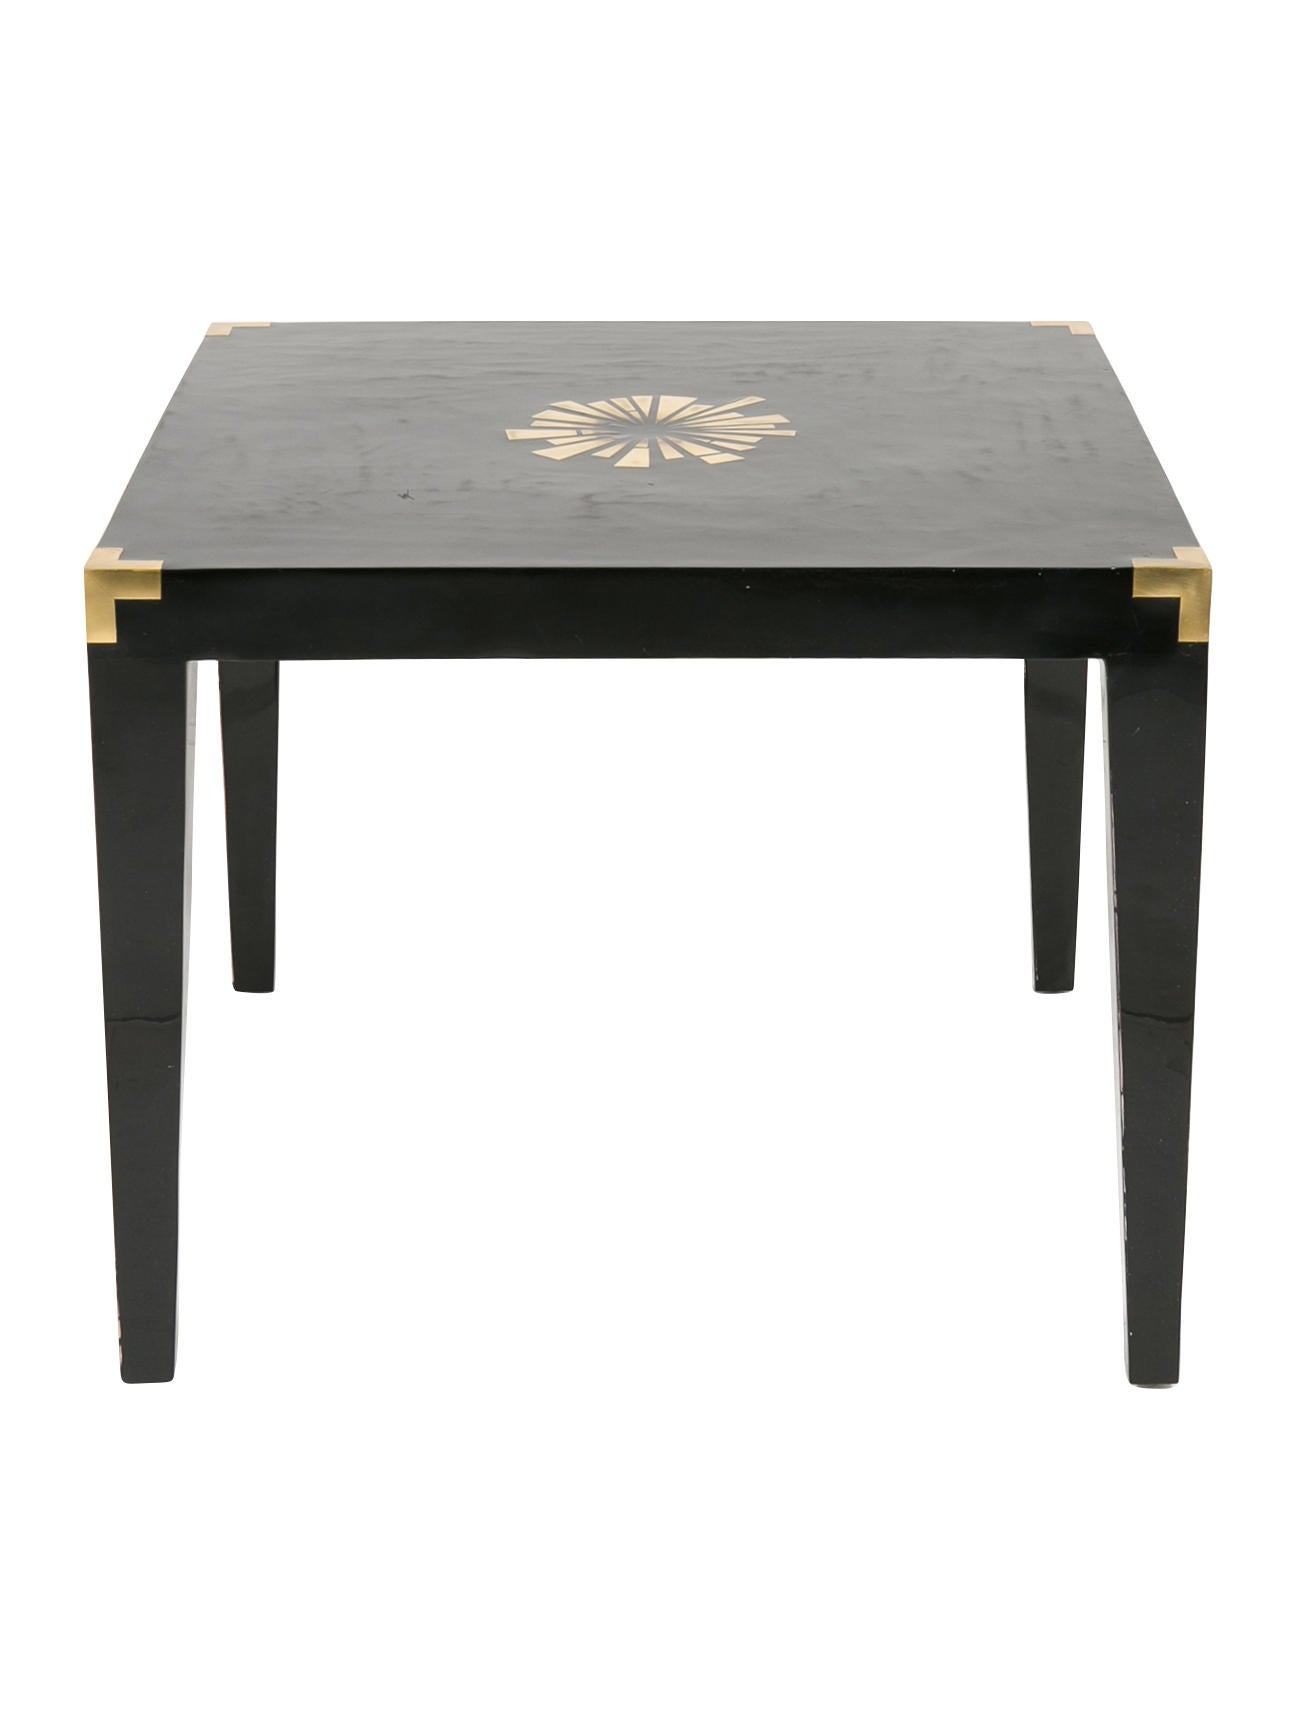 Jonathan adler monaco game table and chairs set for Furniture quiz